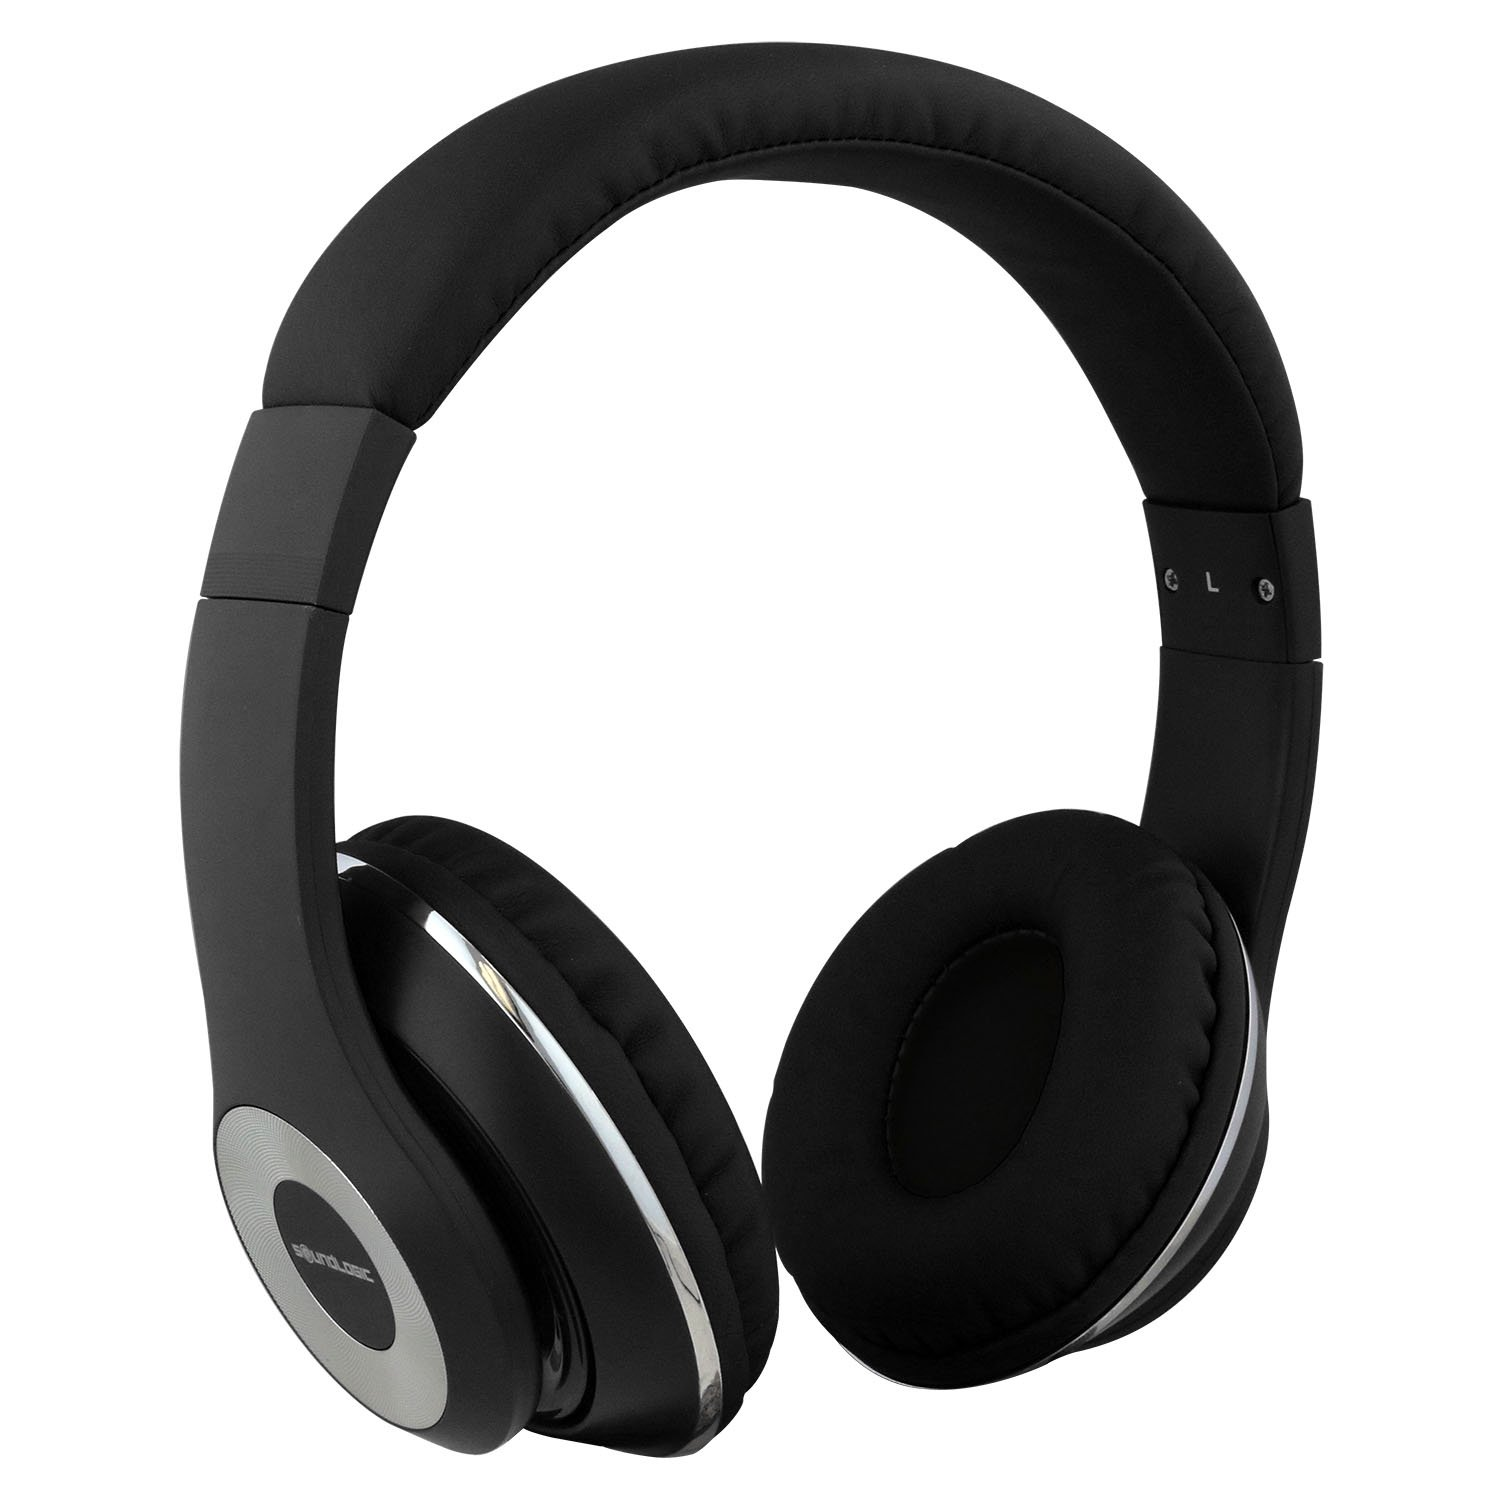 fc8b60a1a8b SoundLogic XT Dynabass Stereo Headphones with Built-In Microphone, Black:  Amazon.ca: Electronics